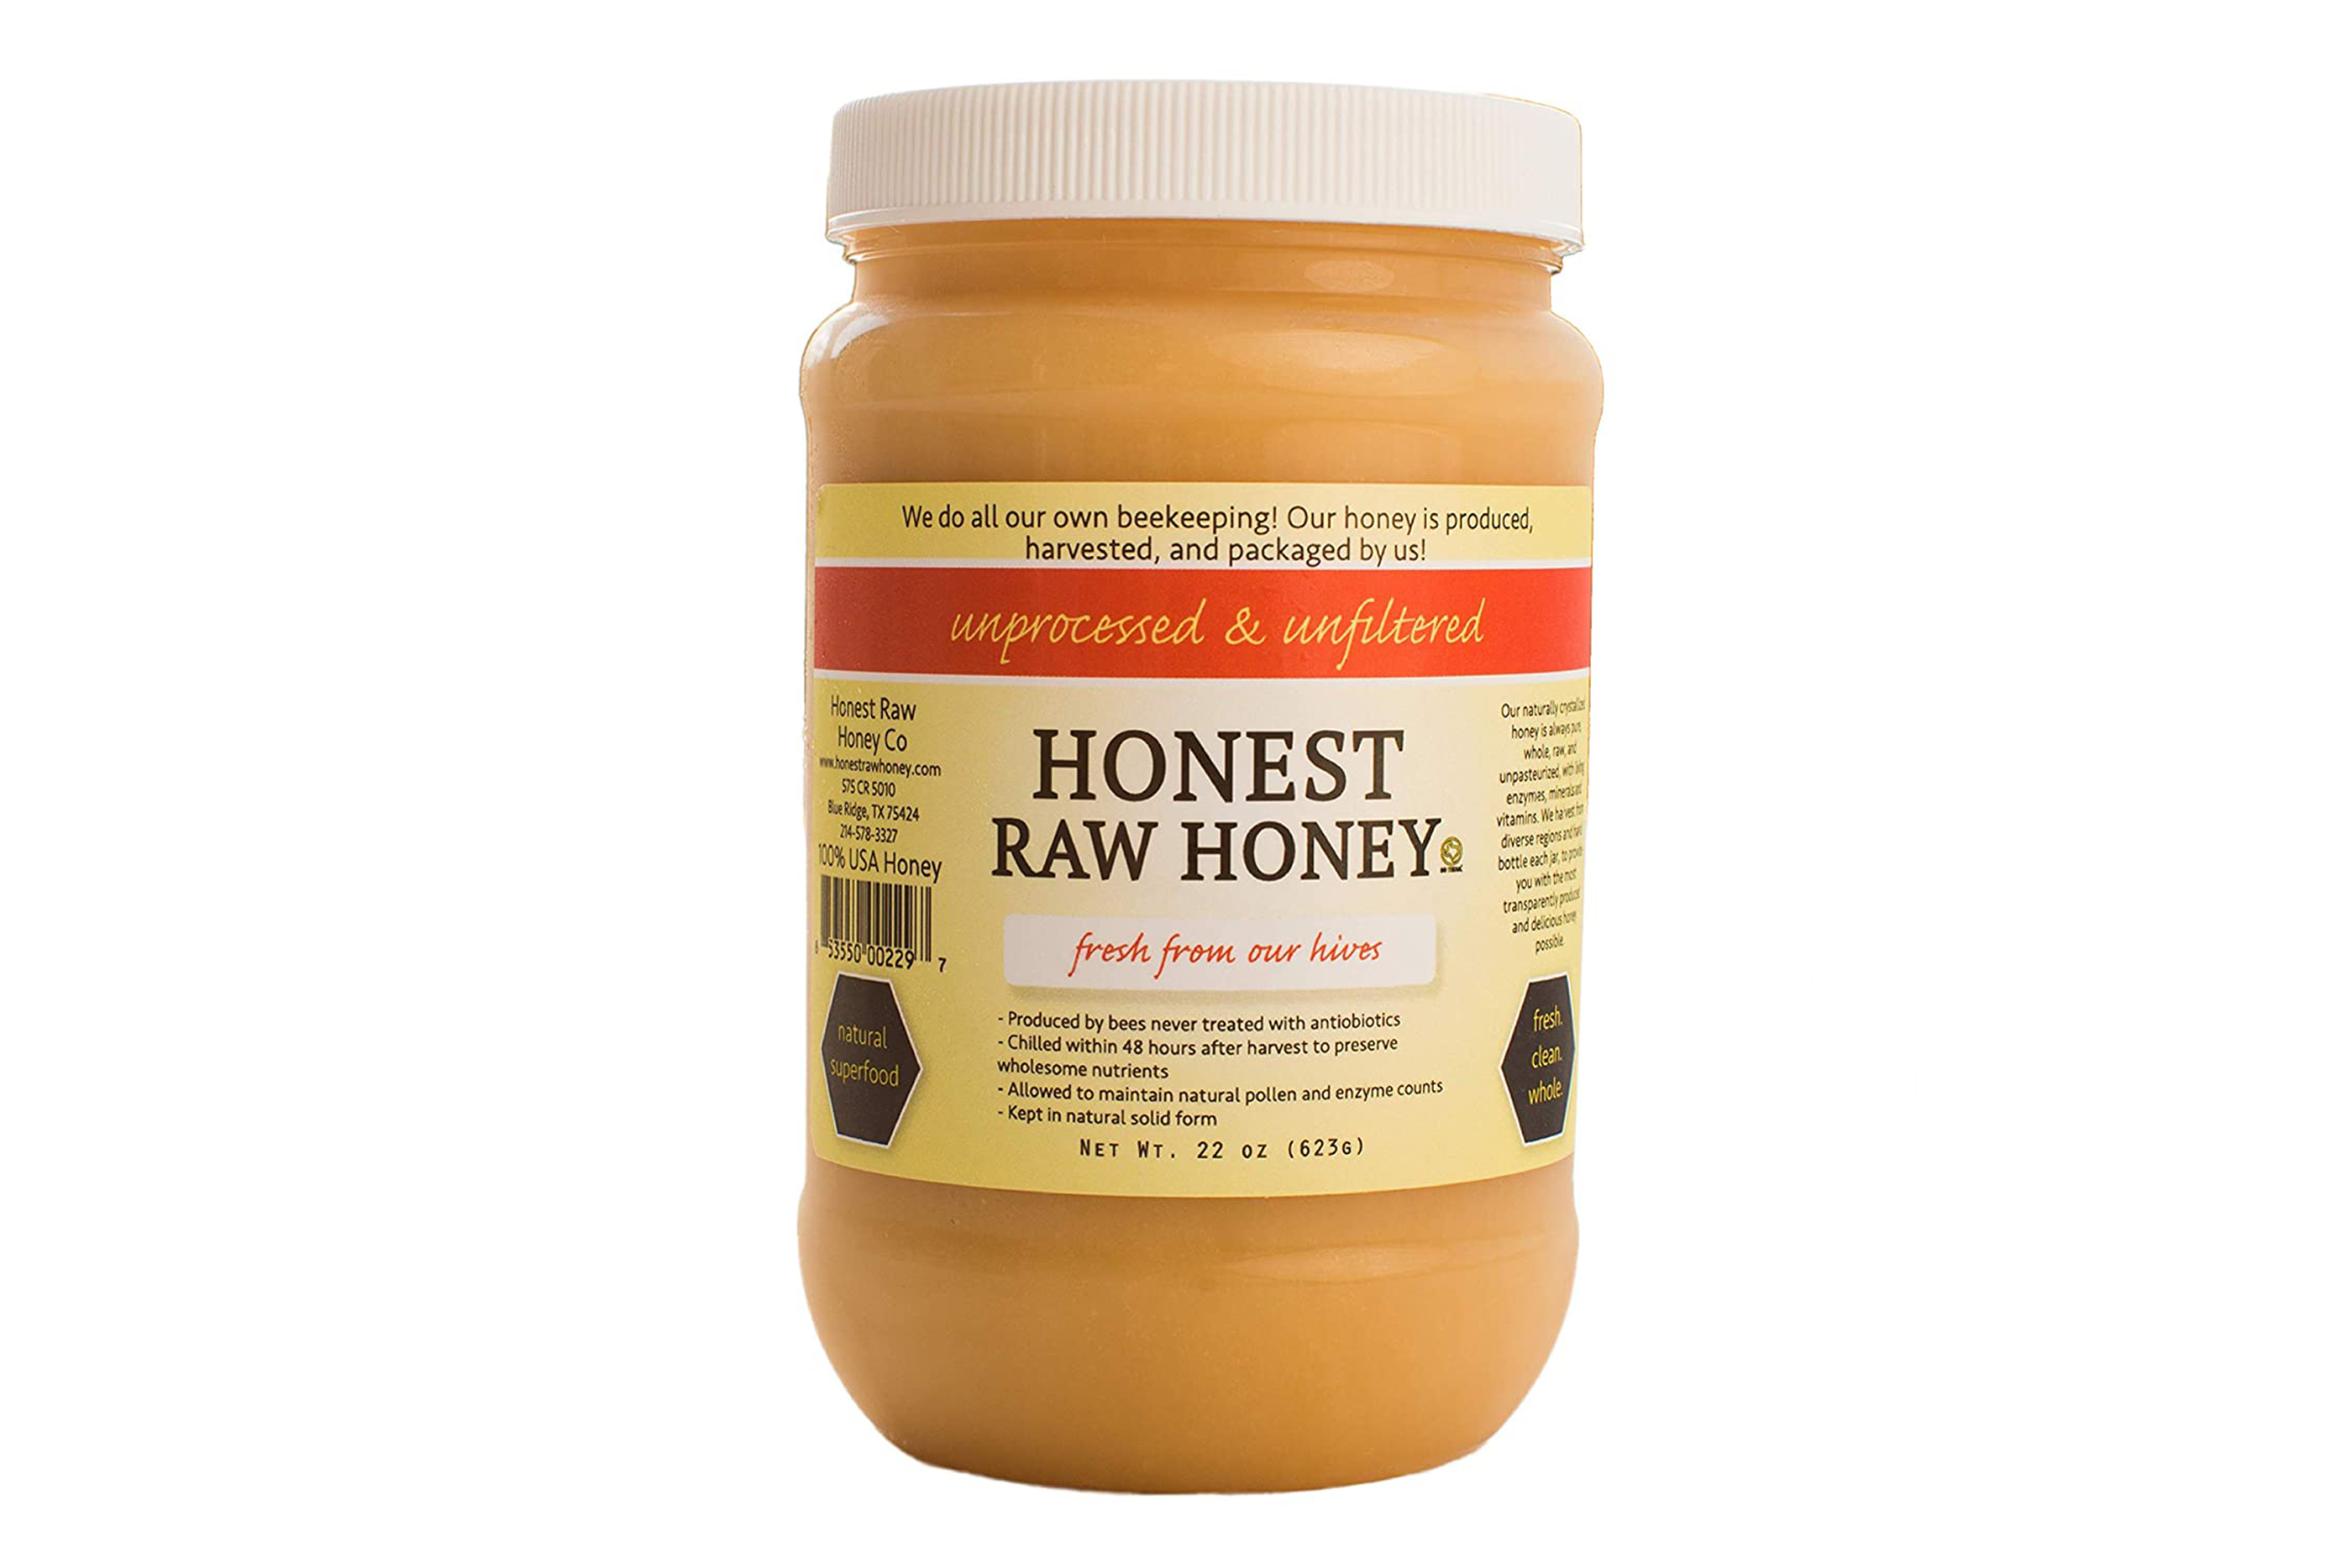 a jar of Honest Raw Honey on a white background